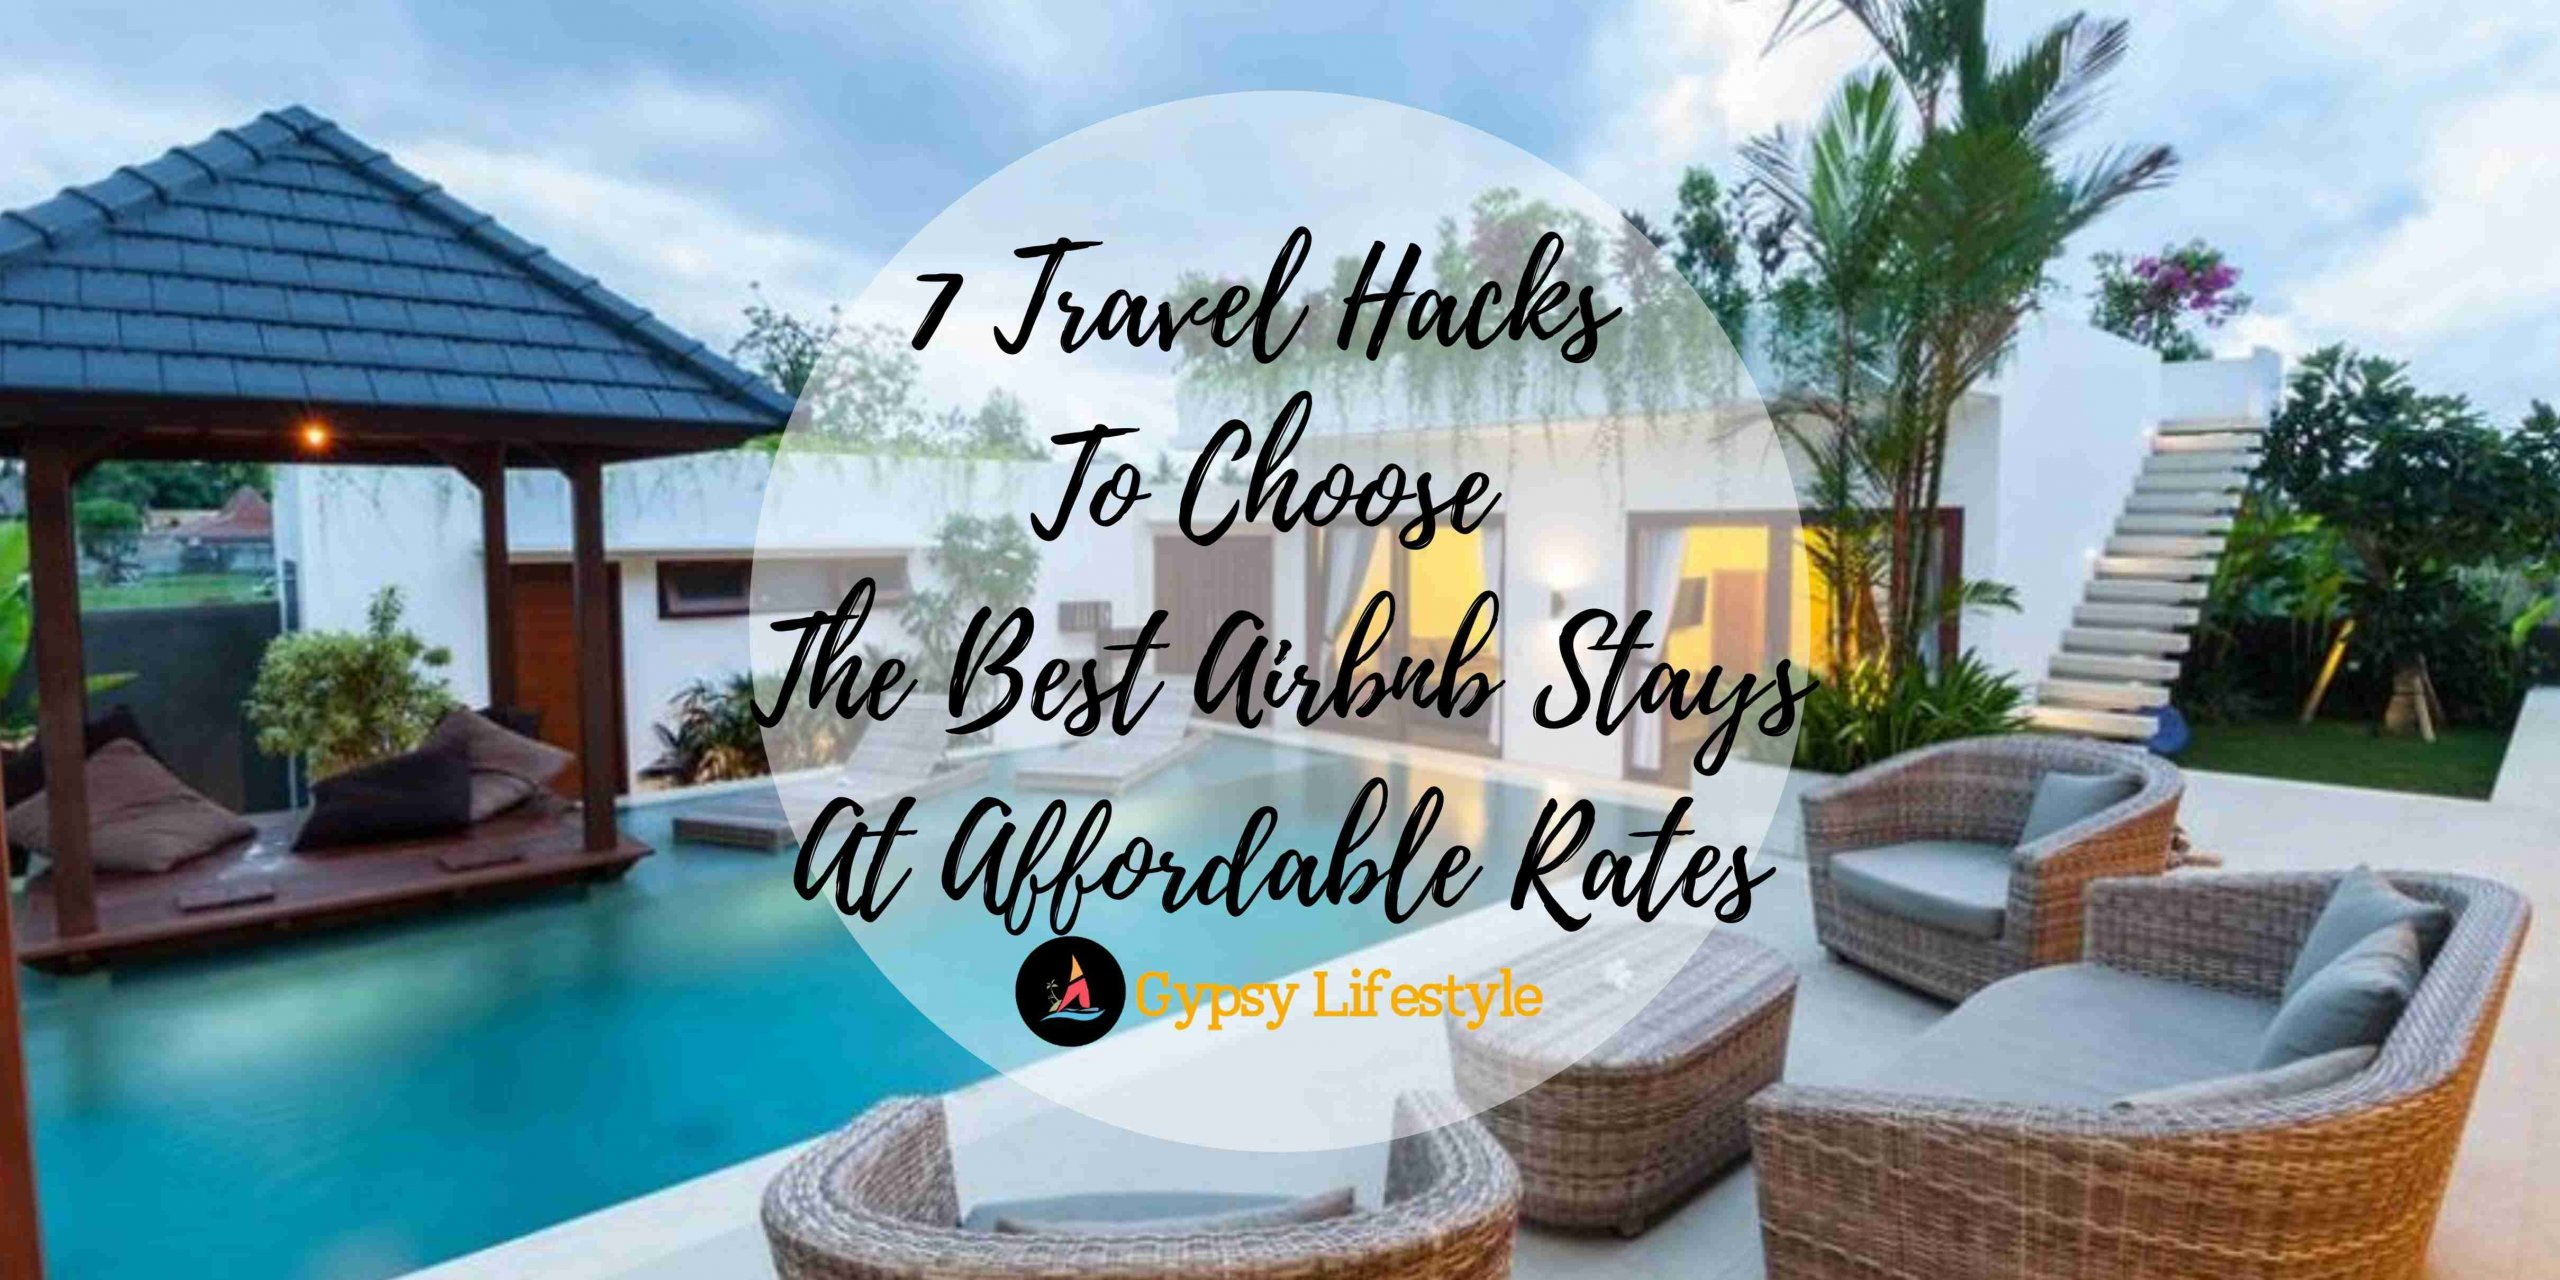 7 Travel Hacks To Choose The Best Airbnb Stays At Affordable Rates